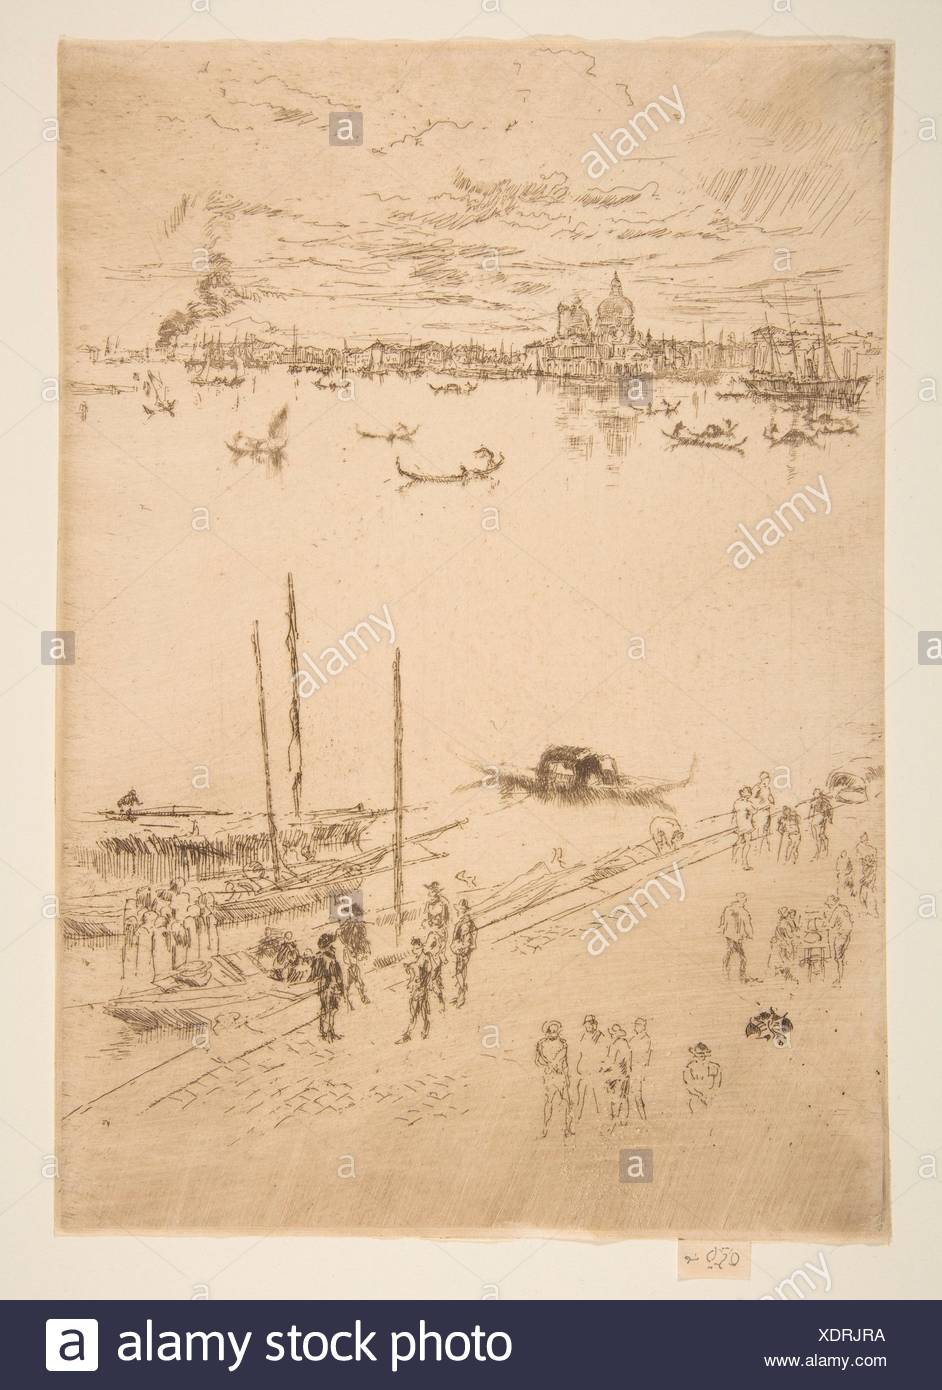 Upright Venice. Series/Portfolio: Second Venice Set (A Set of Twenty-Six Etchings by James A. McN. Whistler, 1886); Artist: James McNeill Whistler - Stock Image